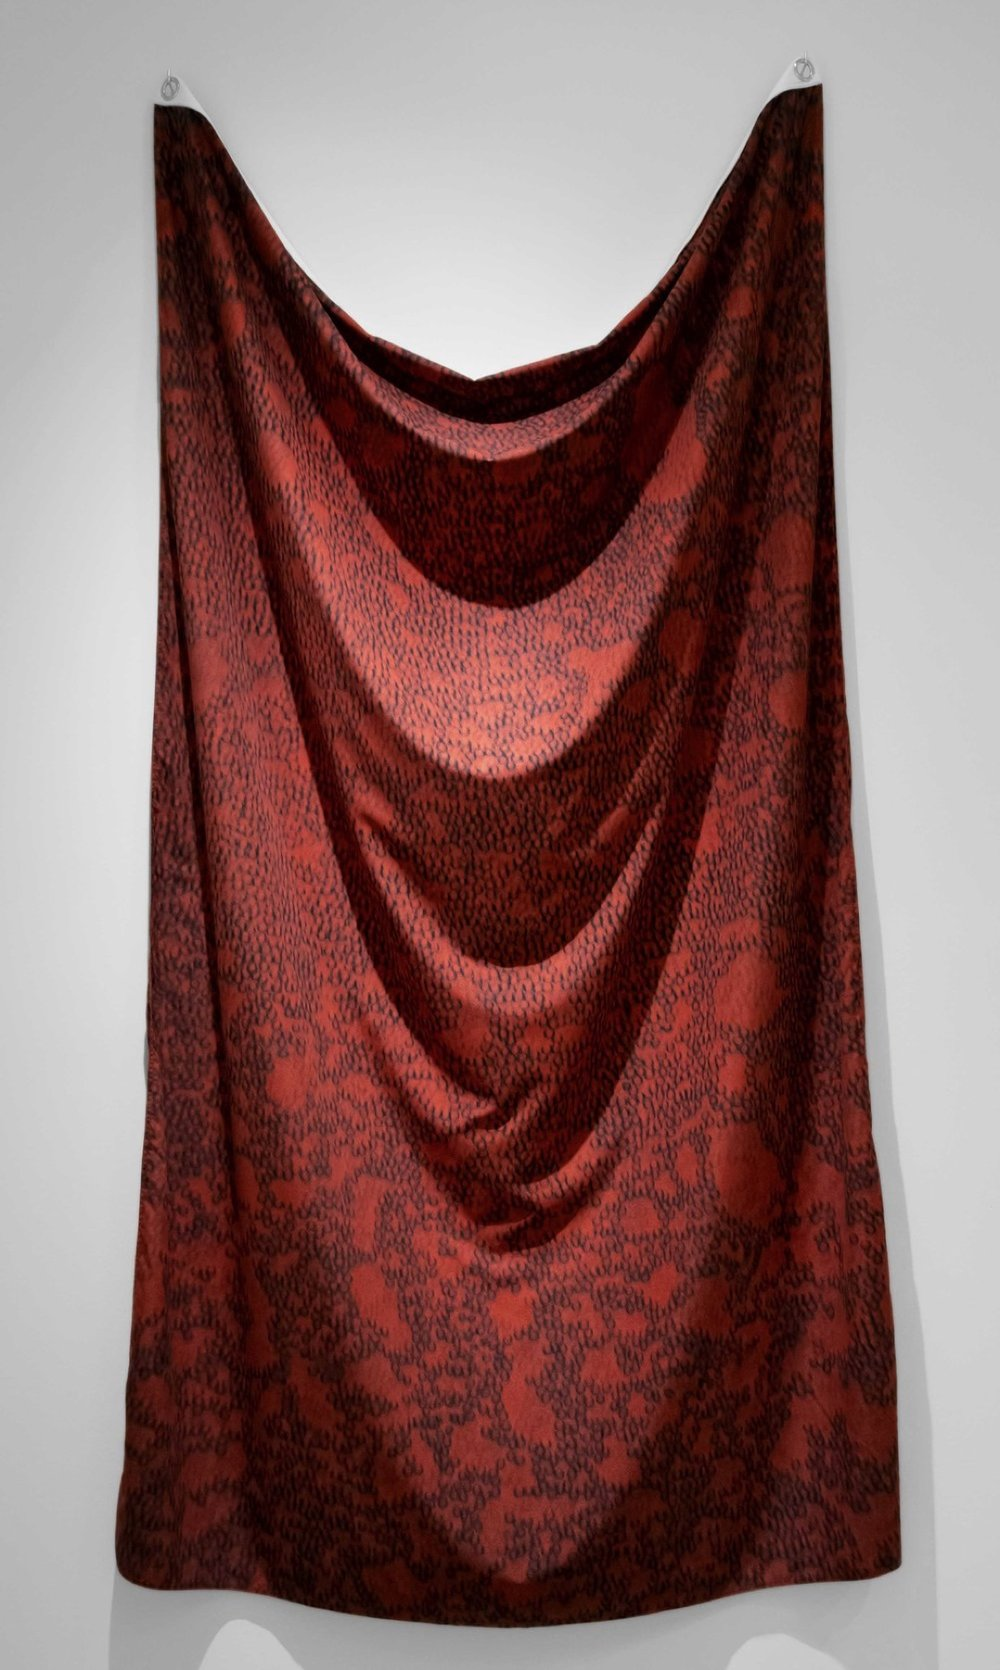 "Blood Flag, in collaboration with Jonny Cota of SKINGRAFT, 2015-present 84 x 53"" Sublimation print on fabric of red blood cells and thread stained in blood of Oliver Anene, Blue Bayer, Howard Grossman, M.D., Kelsey Louie, Lawrence D. Mass, M.D., Reverend John Moody, Loren Rice, Ty Spicha, CPT Anthony Woods, grommets, additional HIV testing blood samples from 27 individuals."